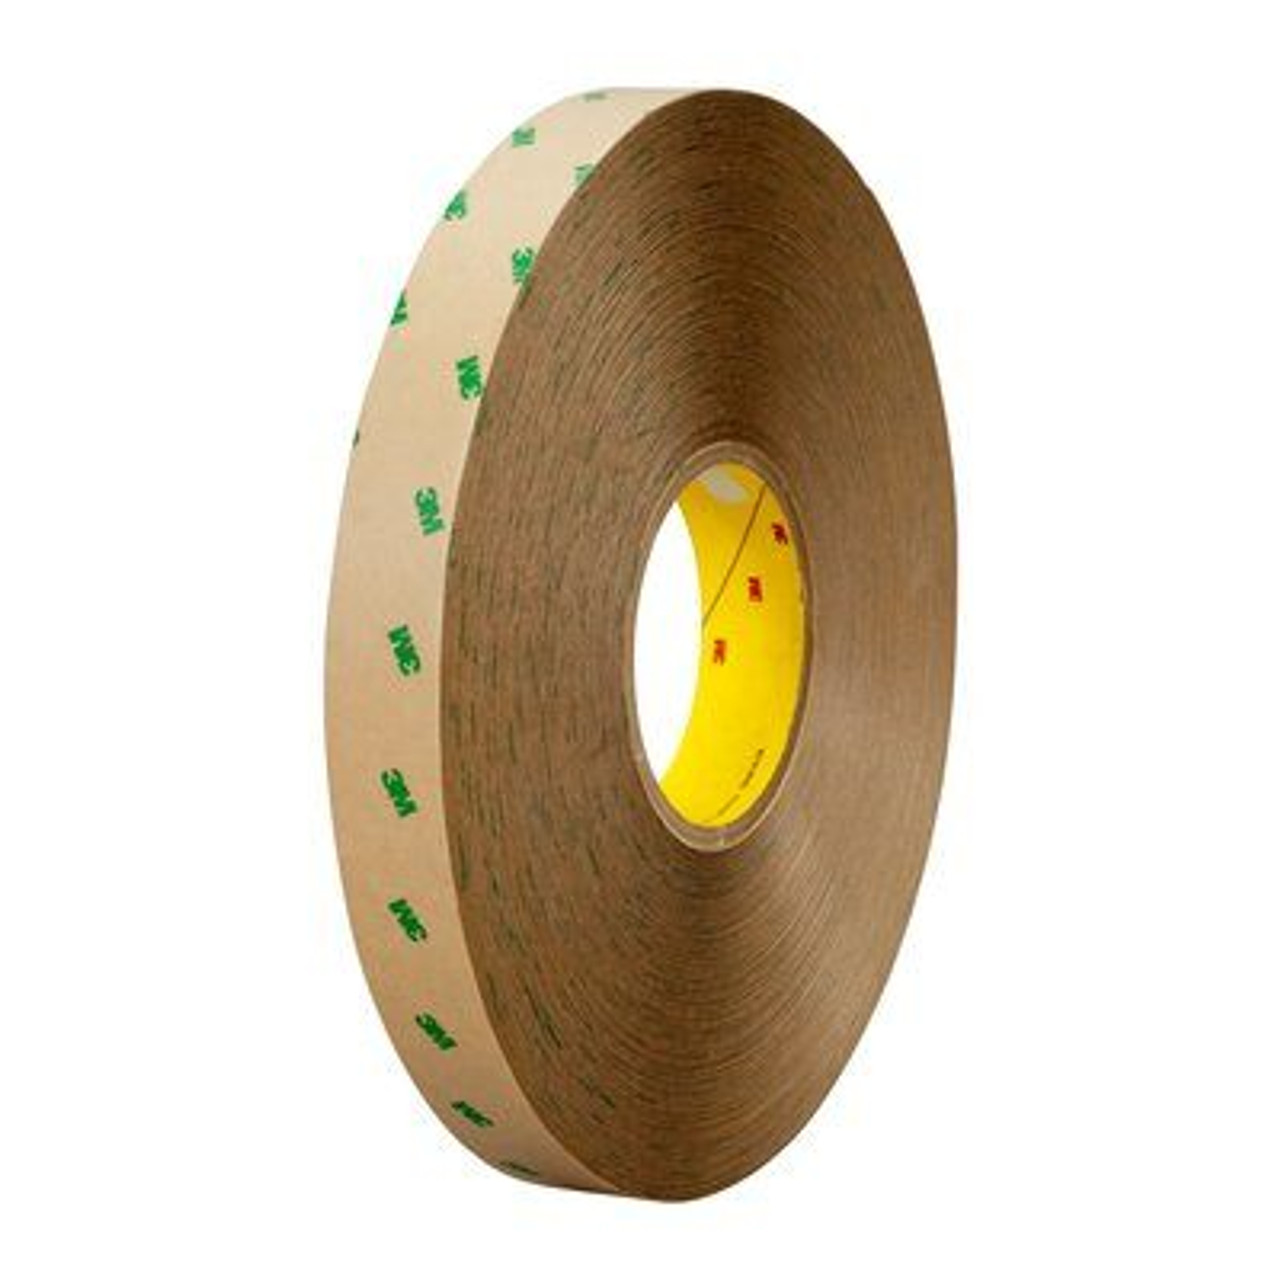 3M™ Adhesive Transfer Tape 9505 Clear, 24 in x 60 yd 5 mil